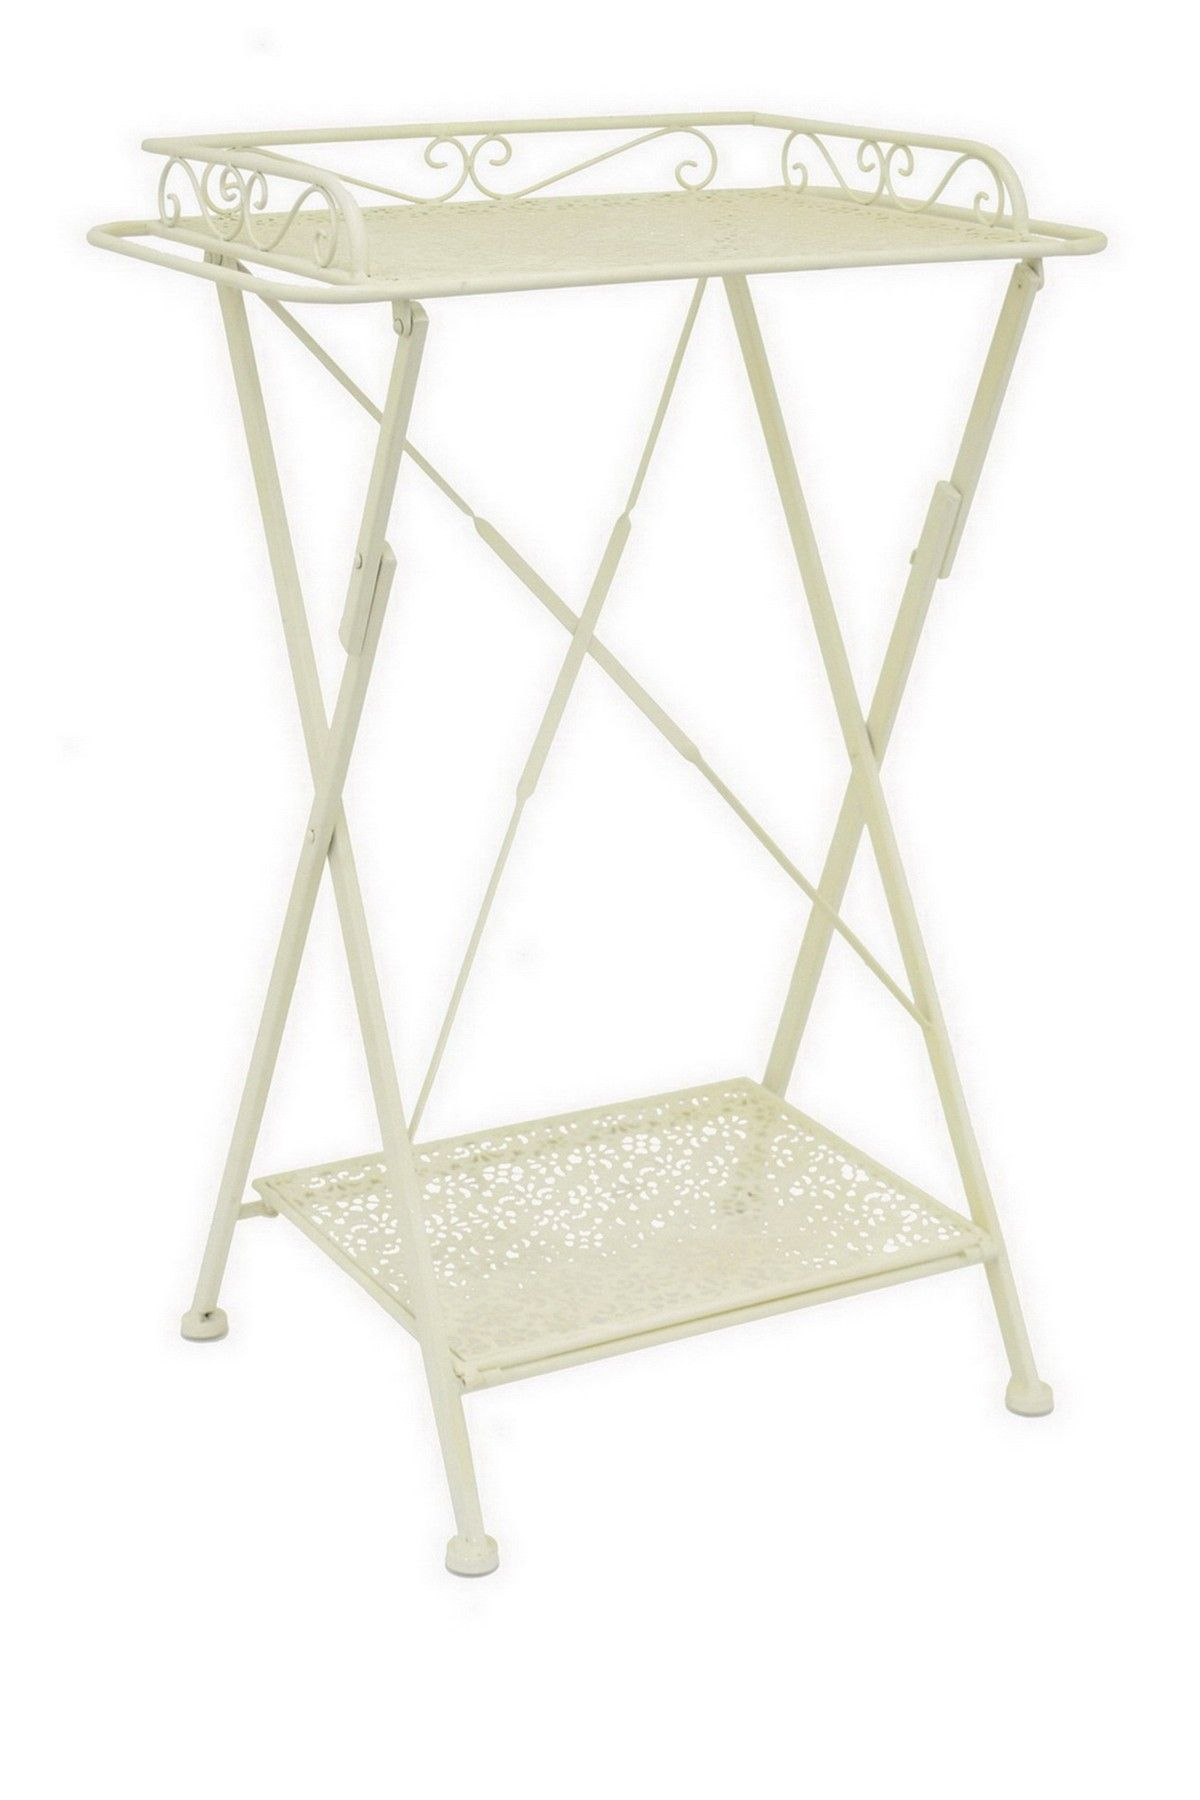 Three Hands | Ivory Metal Folding Tray Table | Nordstrom Rack Sponsored By  Nordstrom Rack.